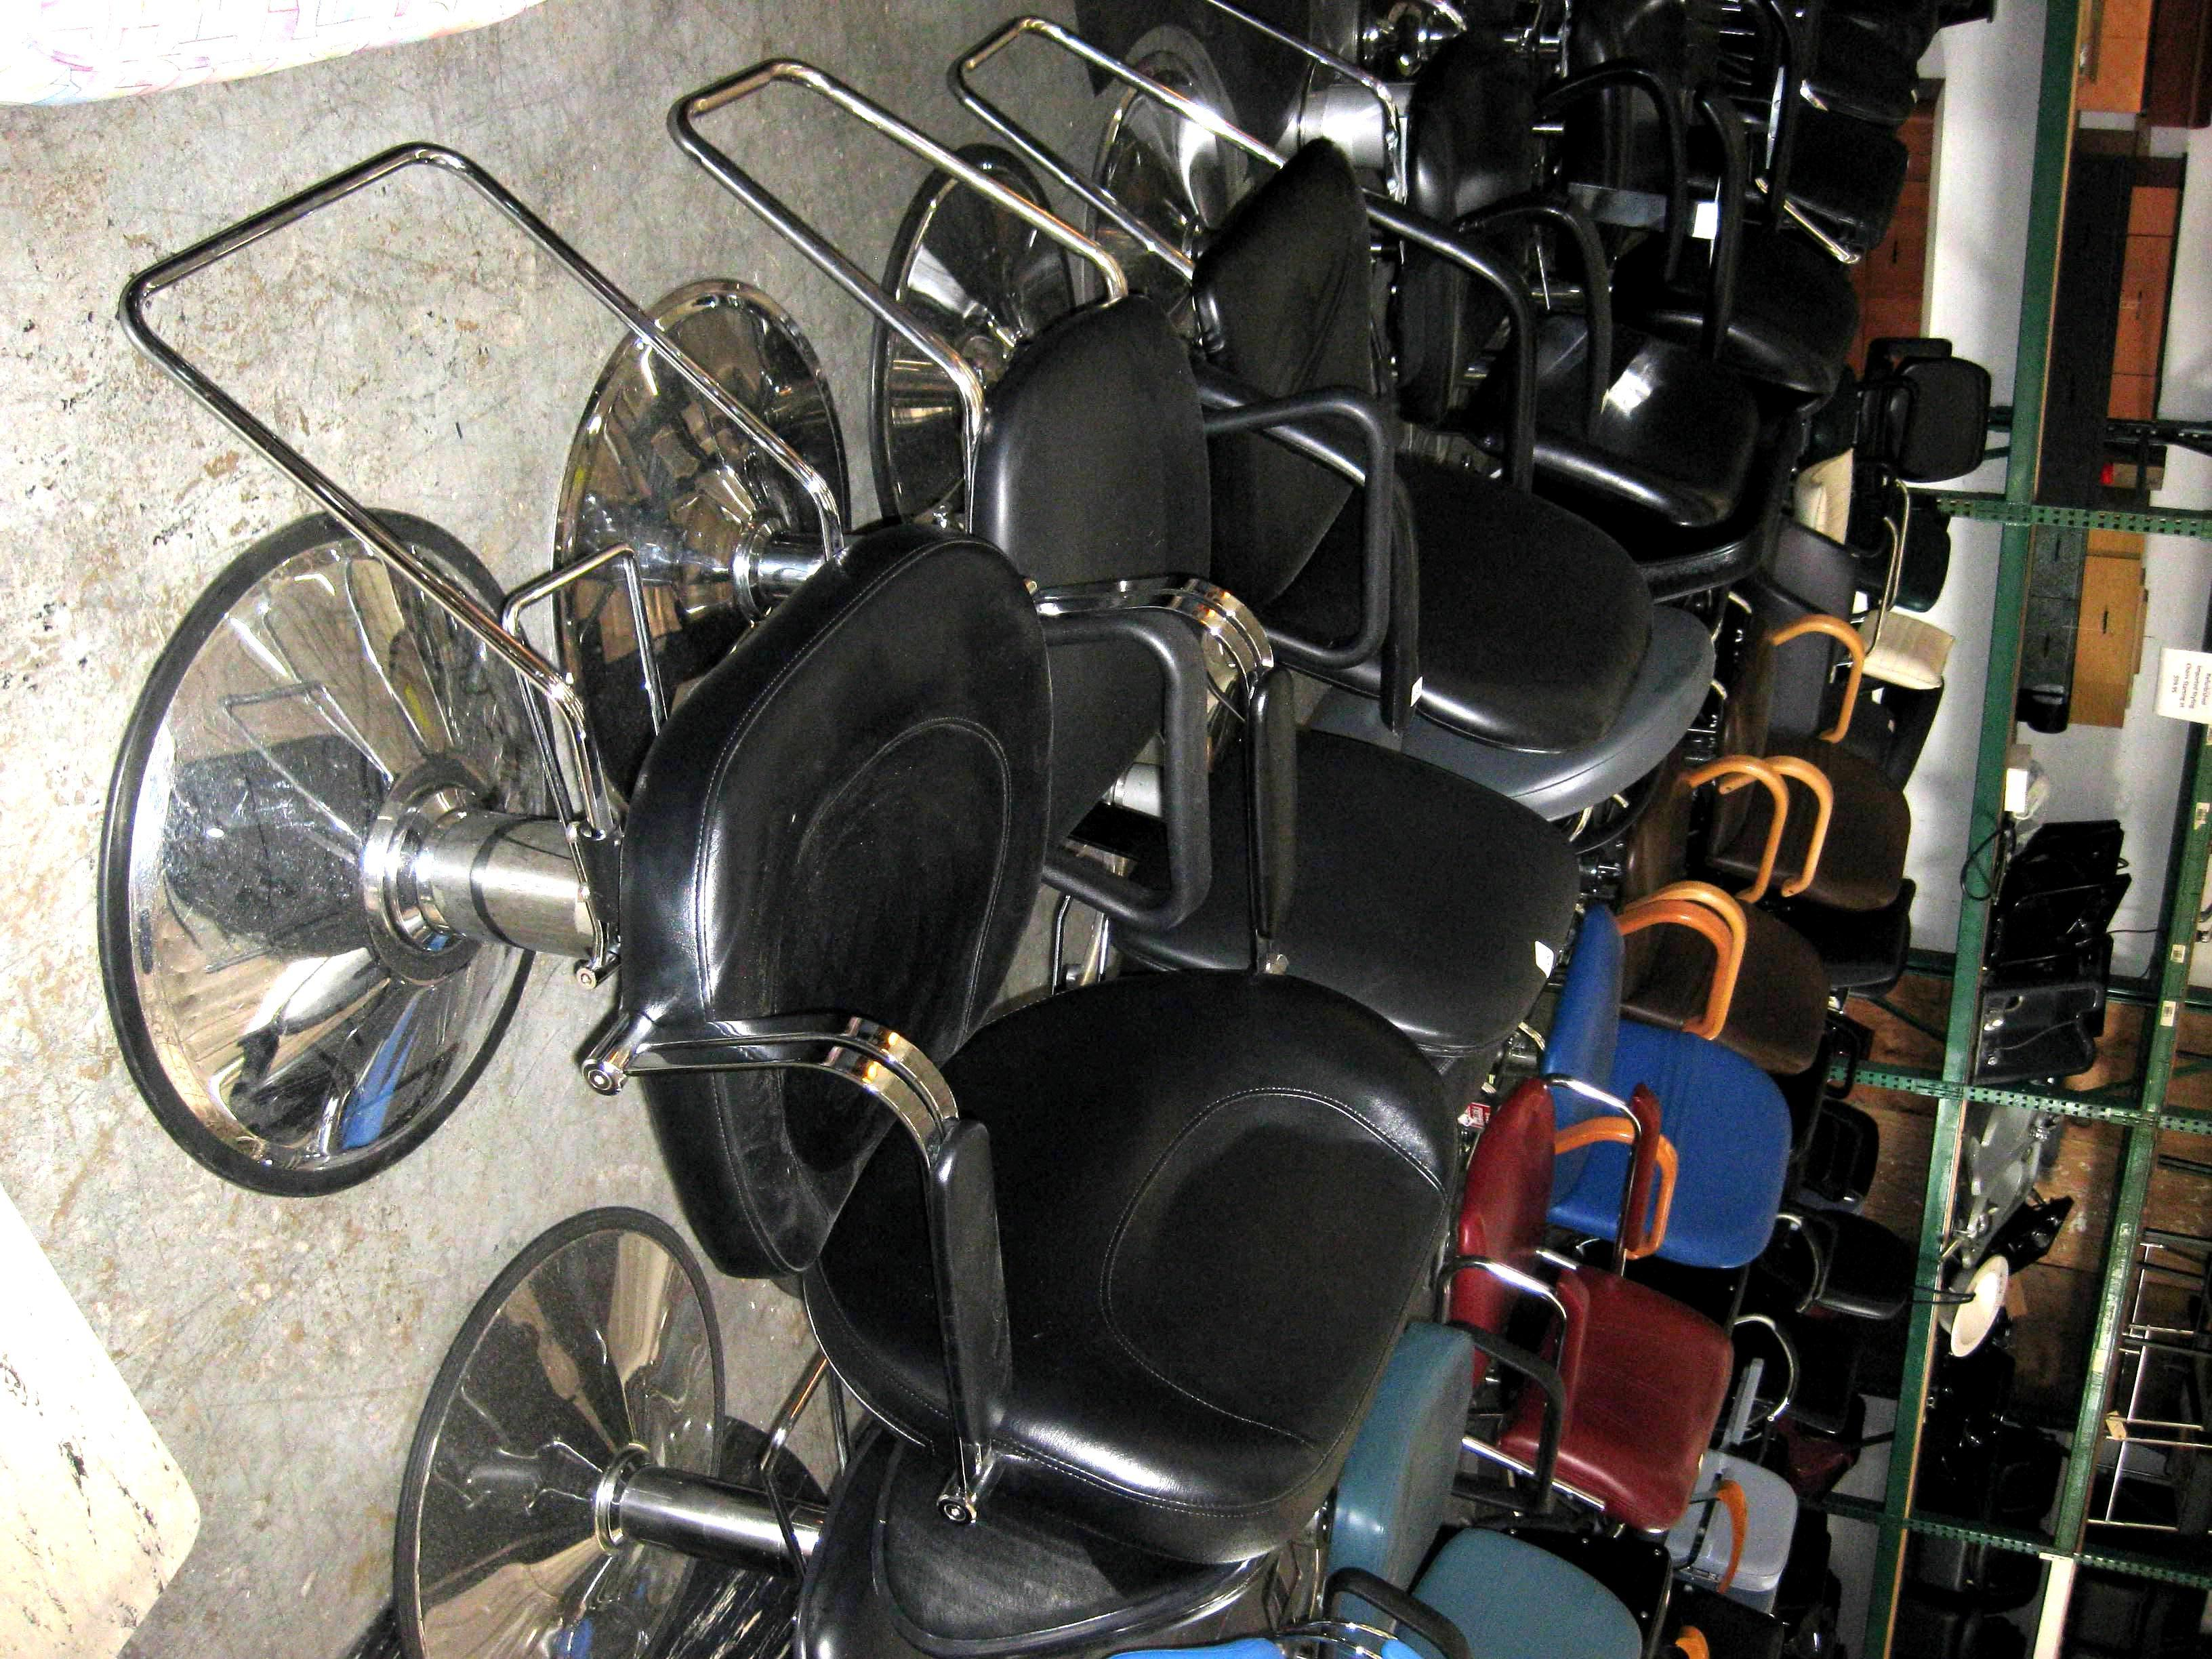 salon chairs for sale wooden rocking chair cushions used equipment most furniture is not shippable